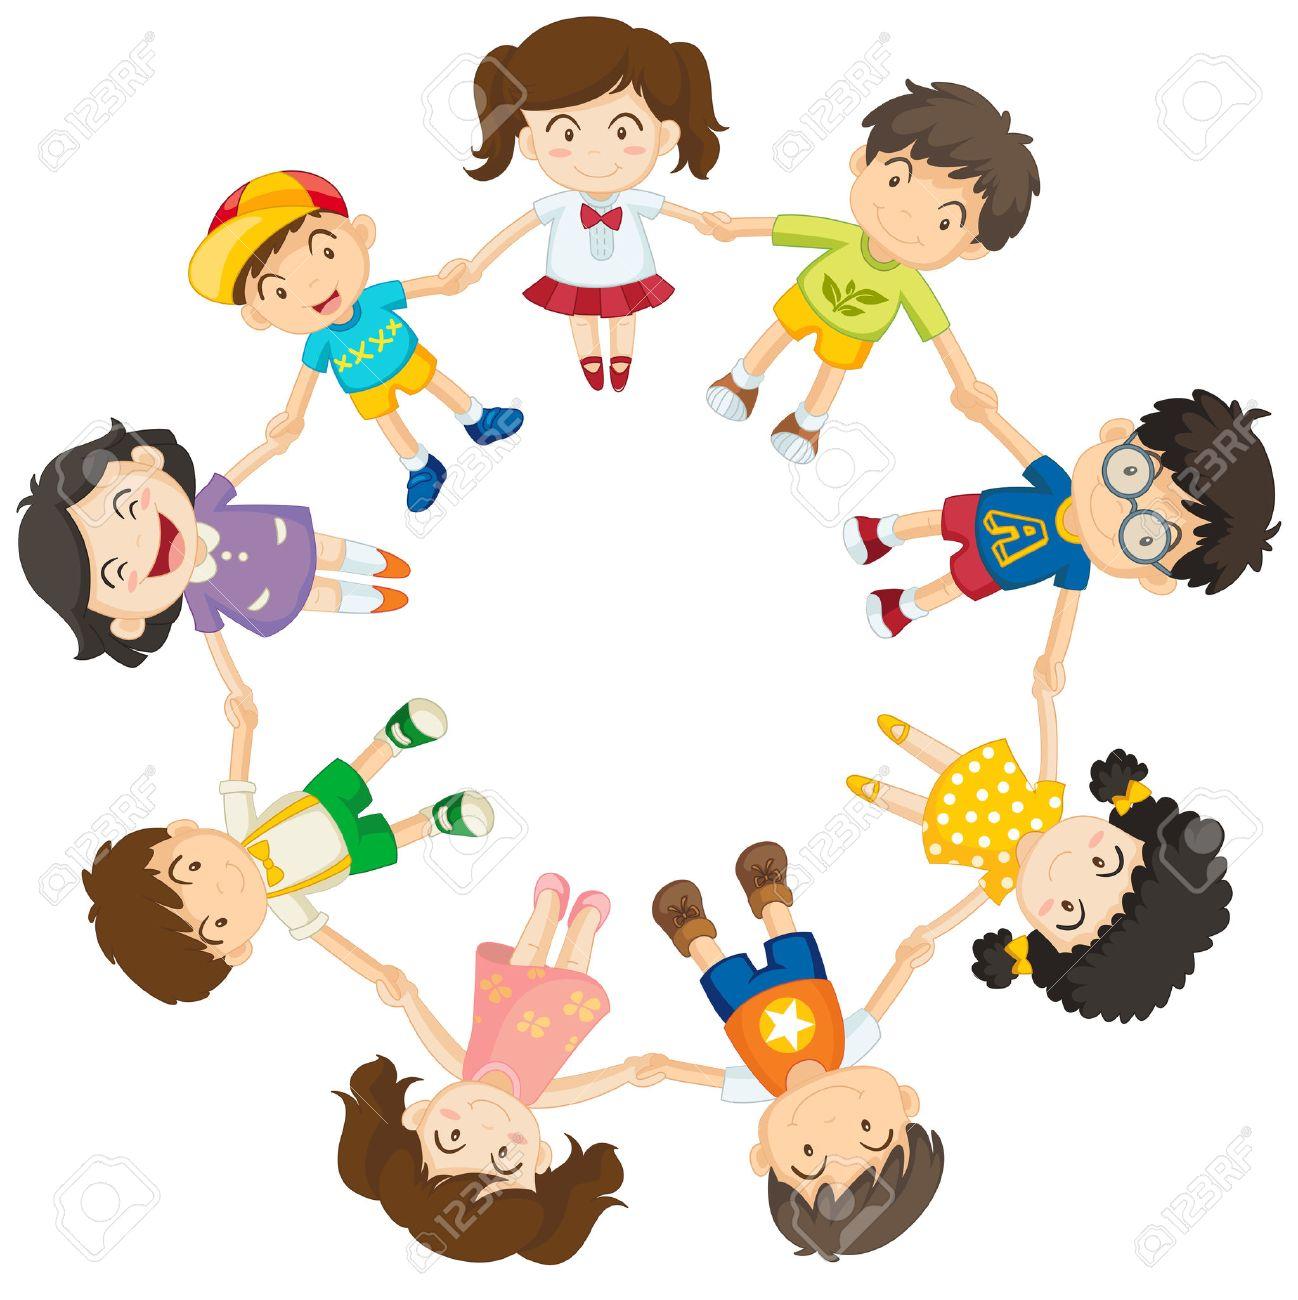 children holding hands in a circle royalty free cliparts vectors rh 123rf com Holding Hands Cartoon Couple Holding Hands Clip Art